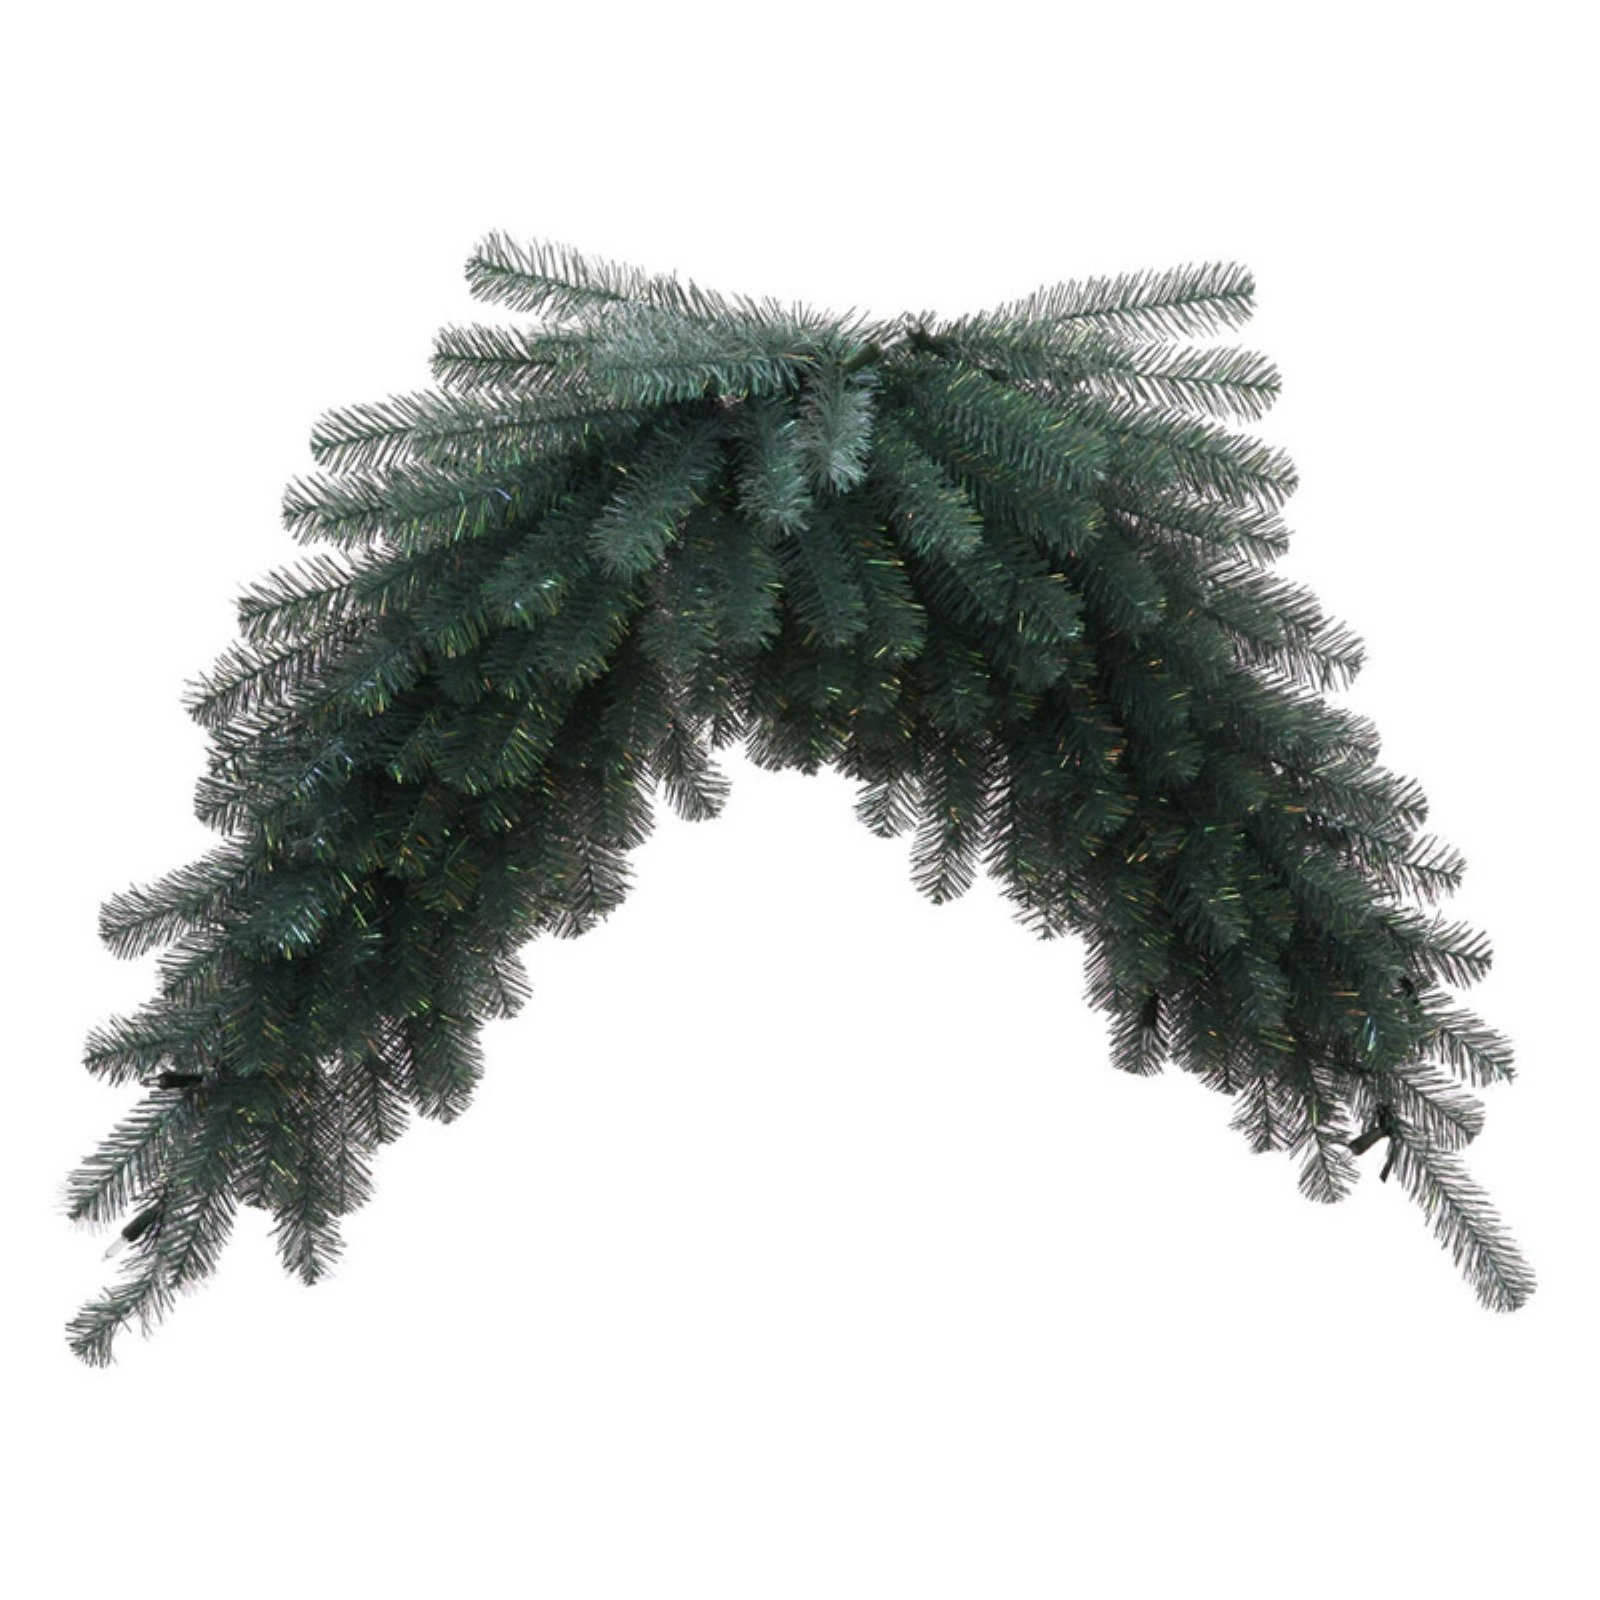 Vickerman Unlit 4' Blue Crystal Swag featuring 188 PVC Tips